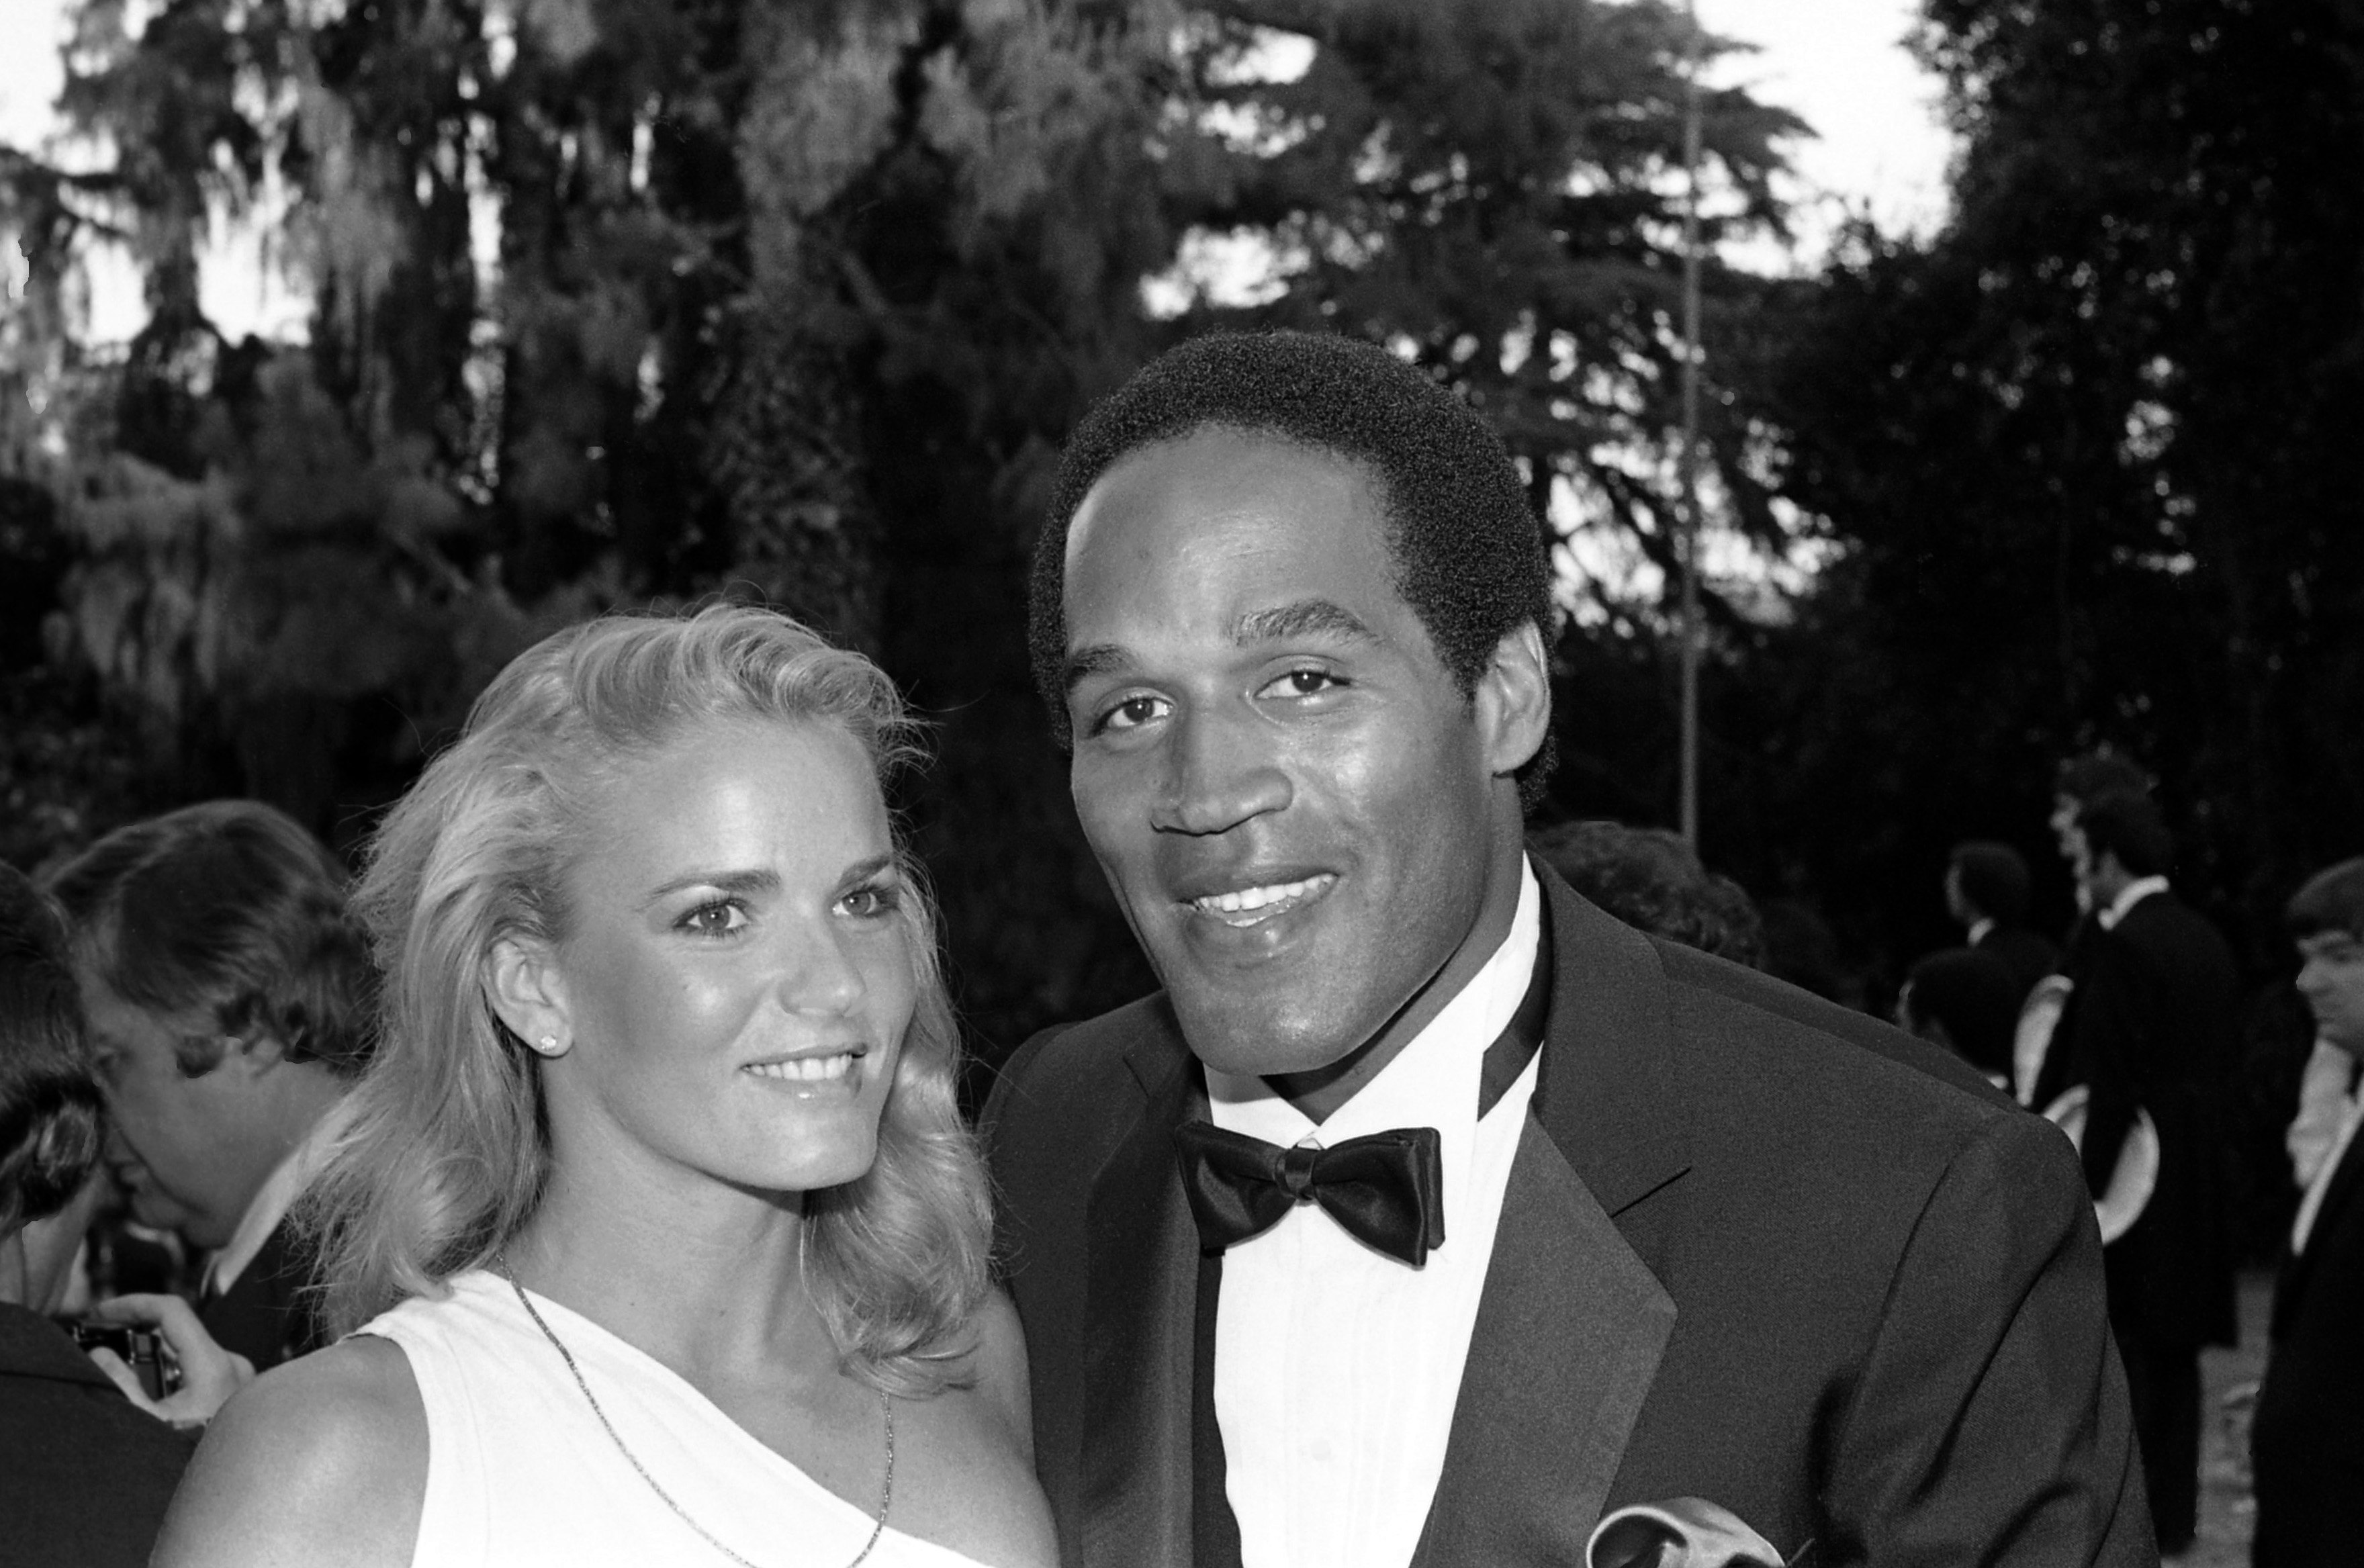 O.J. Simpson and Nicole Brown